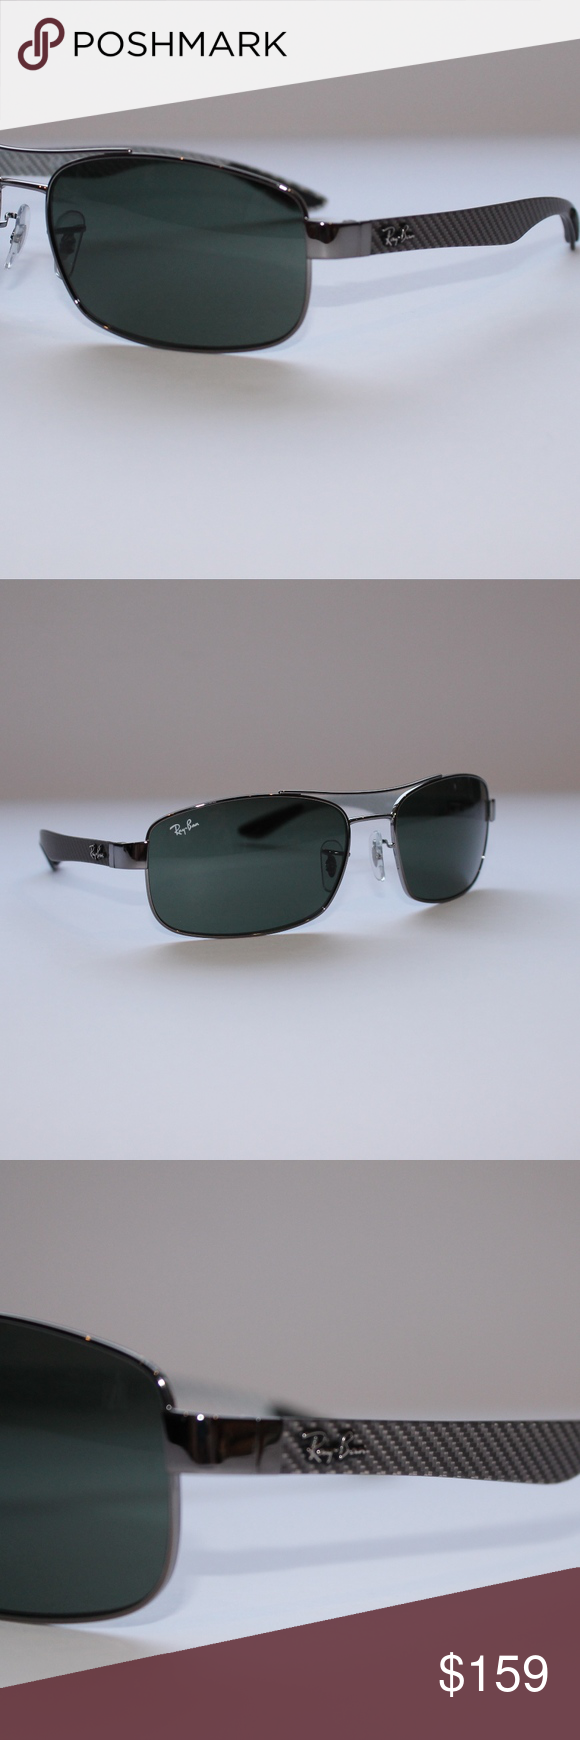 382ec3518bf45 Ray-Ban Tech Carbon Fibre Green Classic G-15 Brand New 100% AuthenticRay